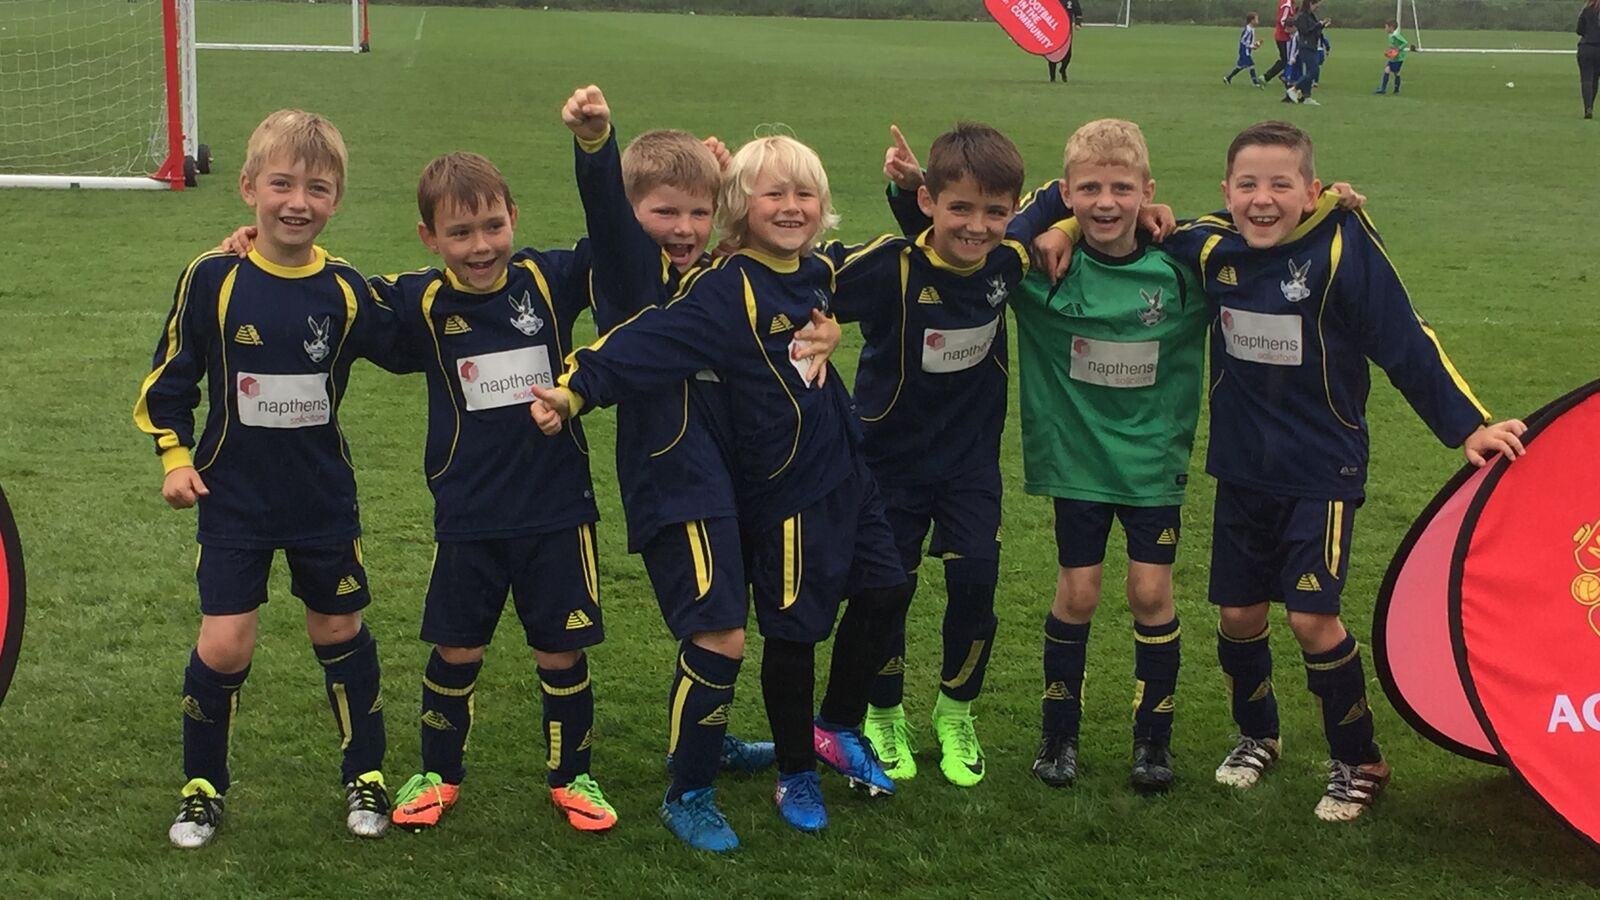 Ormskirk FC U7s play in a tournament at the Man Utd Academy